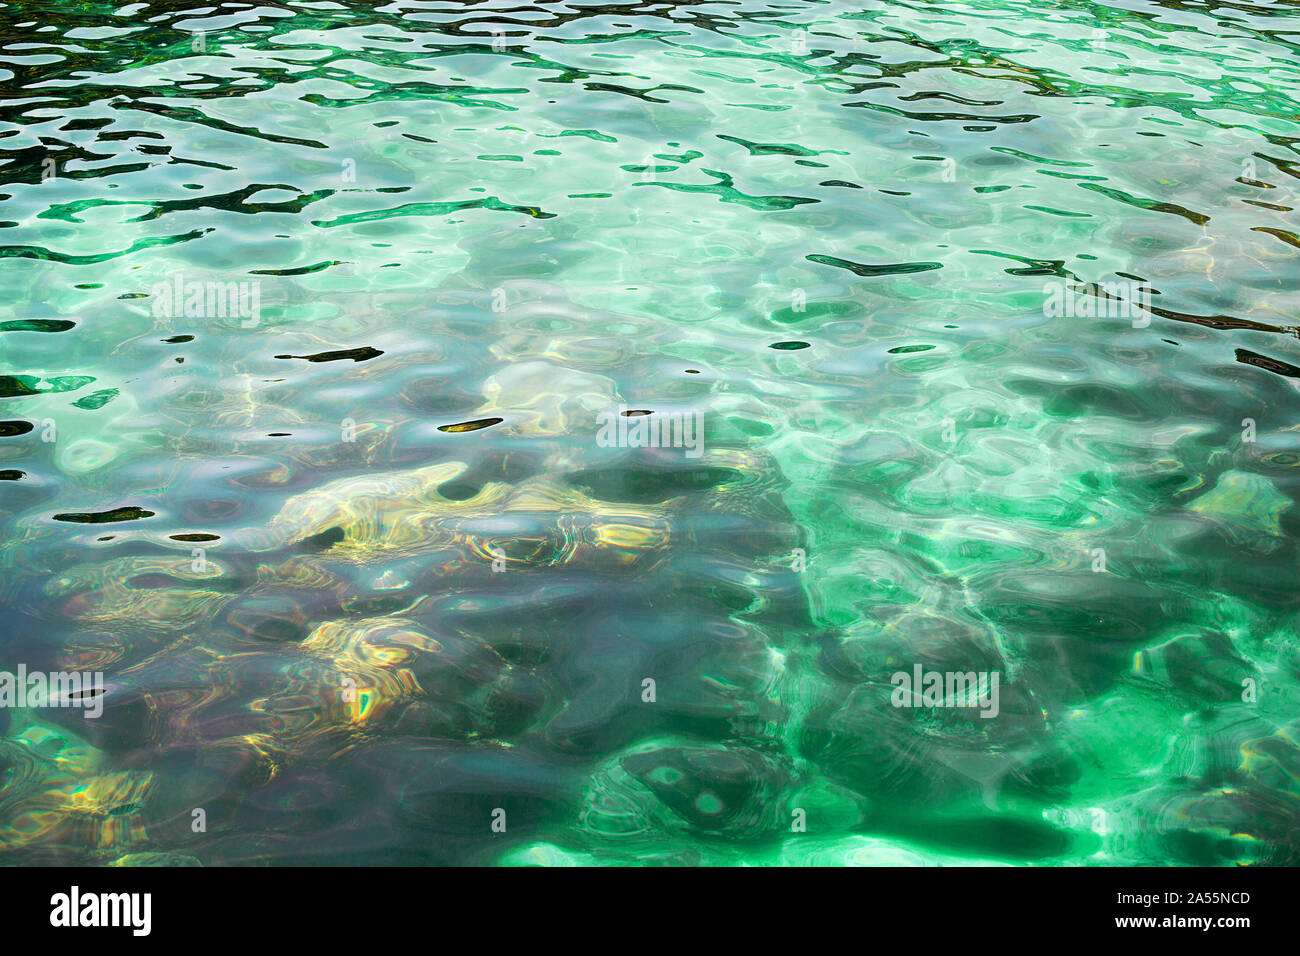 Blue crystal clear sea water, stones texture background, turquoise transparent ocean, underwater coral reef surface close up sun light rays reflection Stock Photo